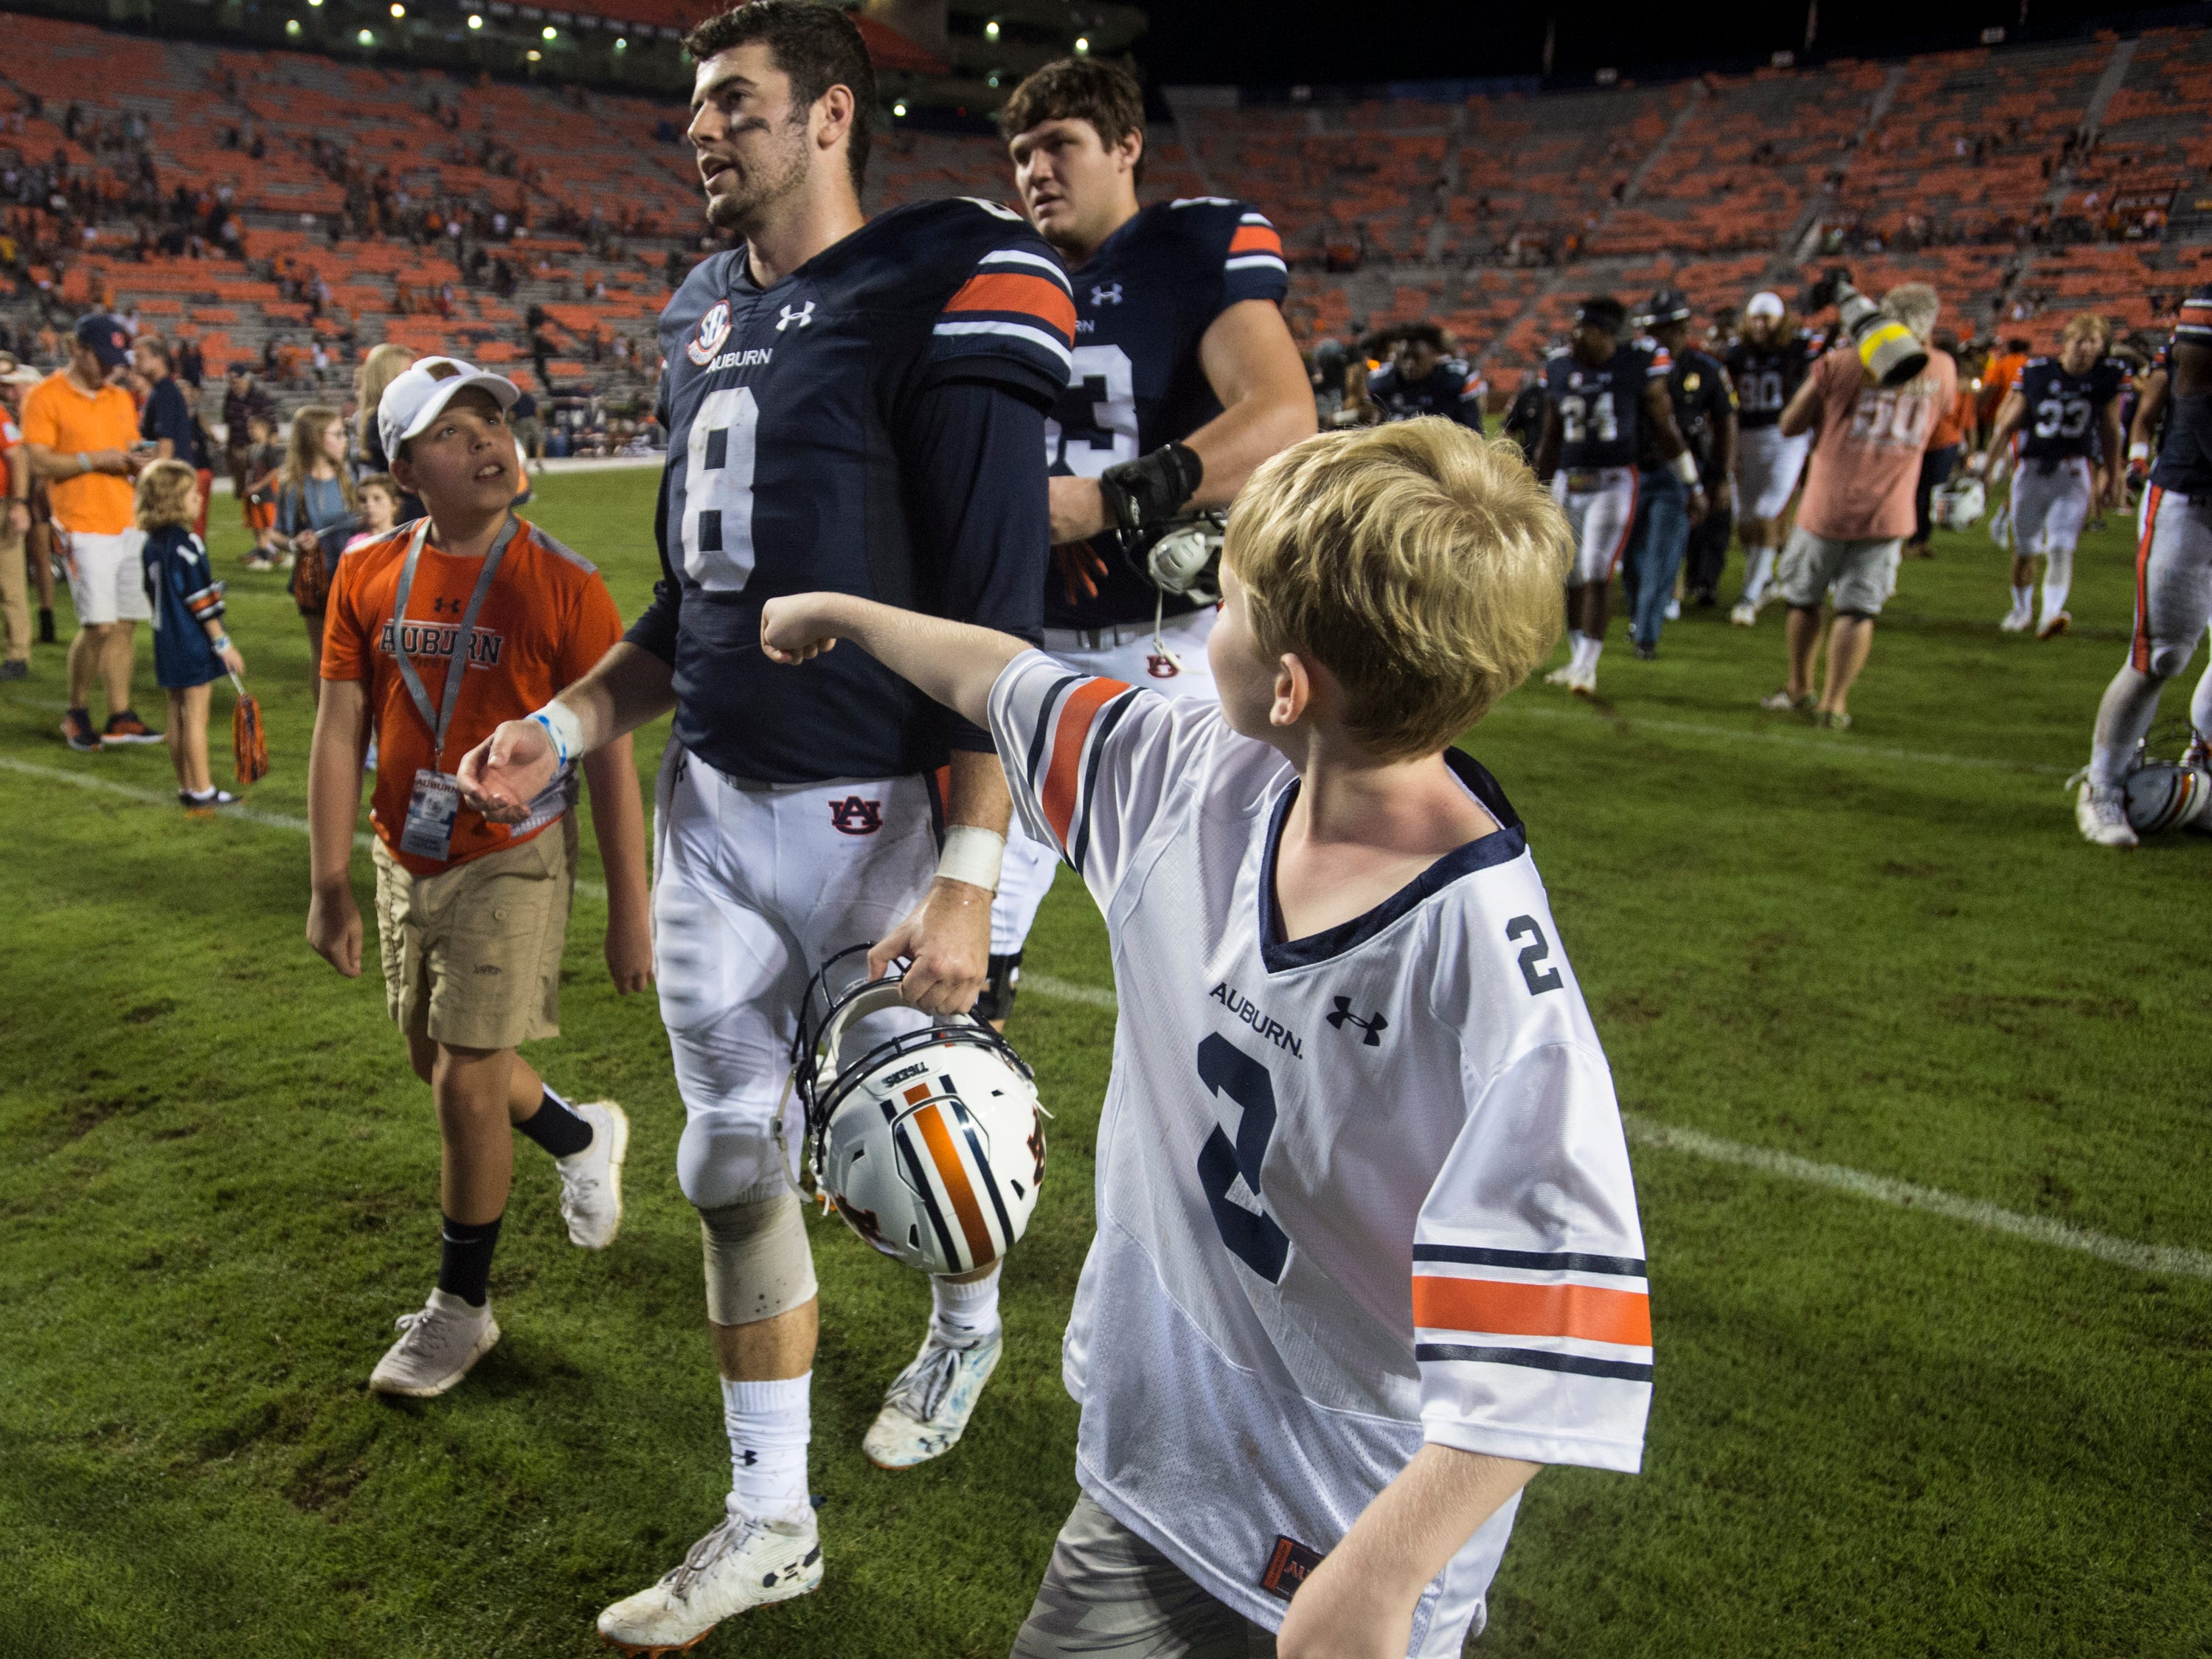 Auburn's Jarrett Stidham (8) is escorted by a couple of young fans as he walks off the field at Jordan-Hare Stadium in Auburn, Ala., on Saturday, Sept. 29, 2018. Auburn defeated  Southern Miss 24-13.